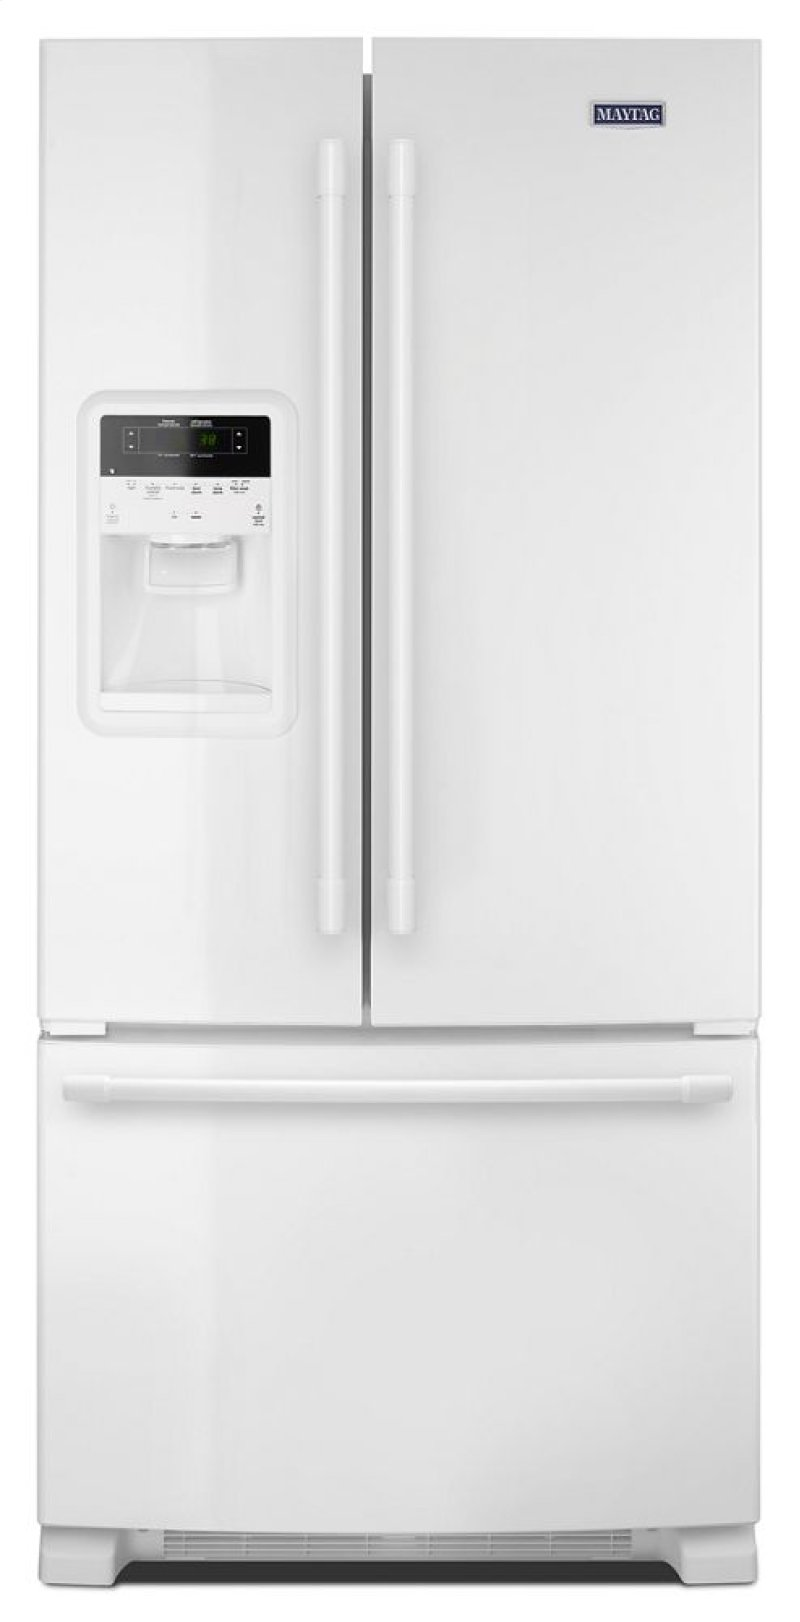 Mfi2269frw in white by maytag in wabash in 33 inch wide french 33 inch wide french door refrigerator with beverage chiller compartment 22 cu ft rubansaba